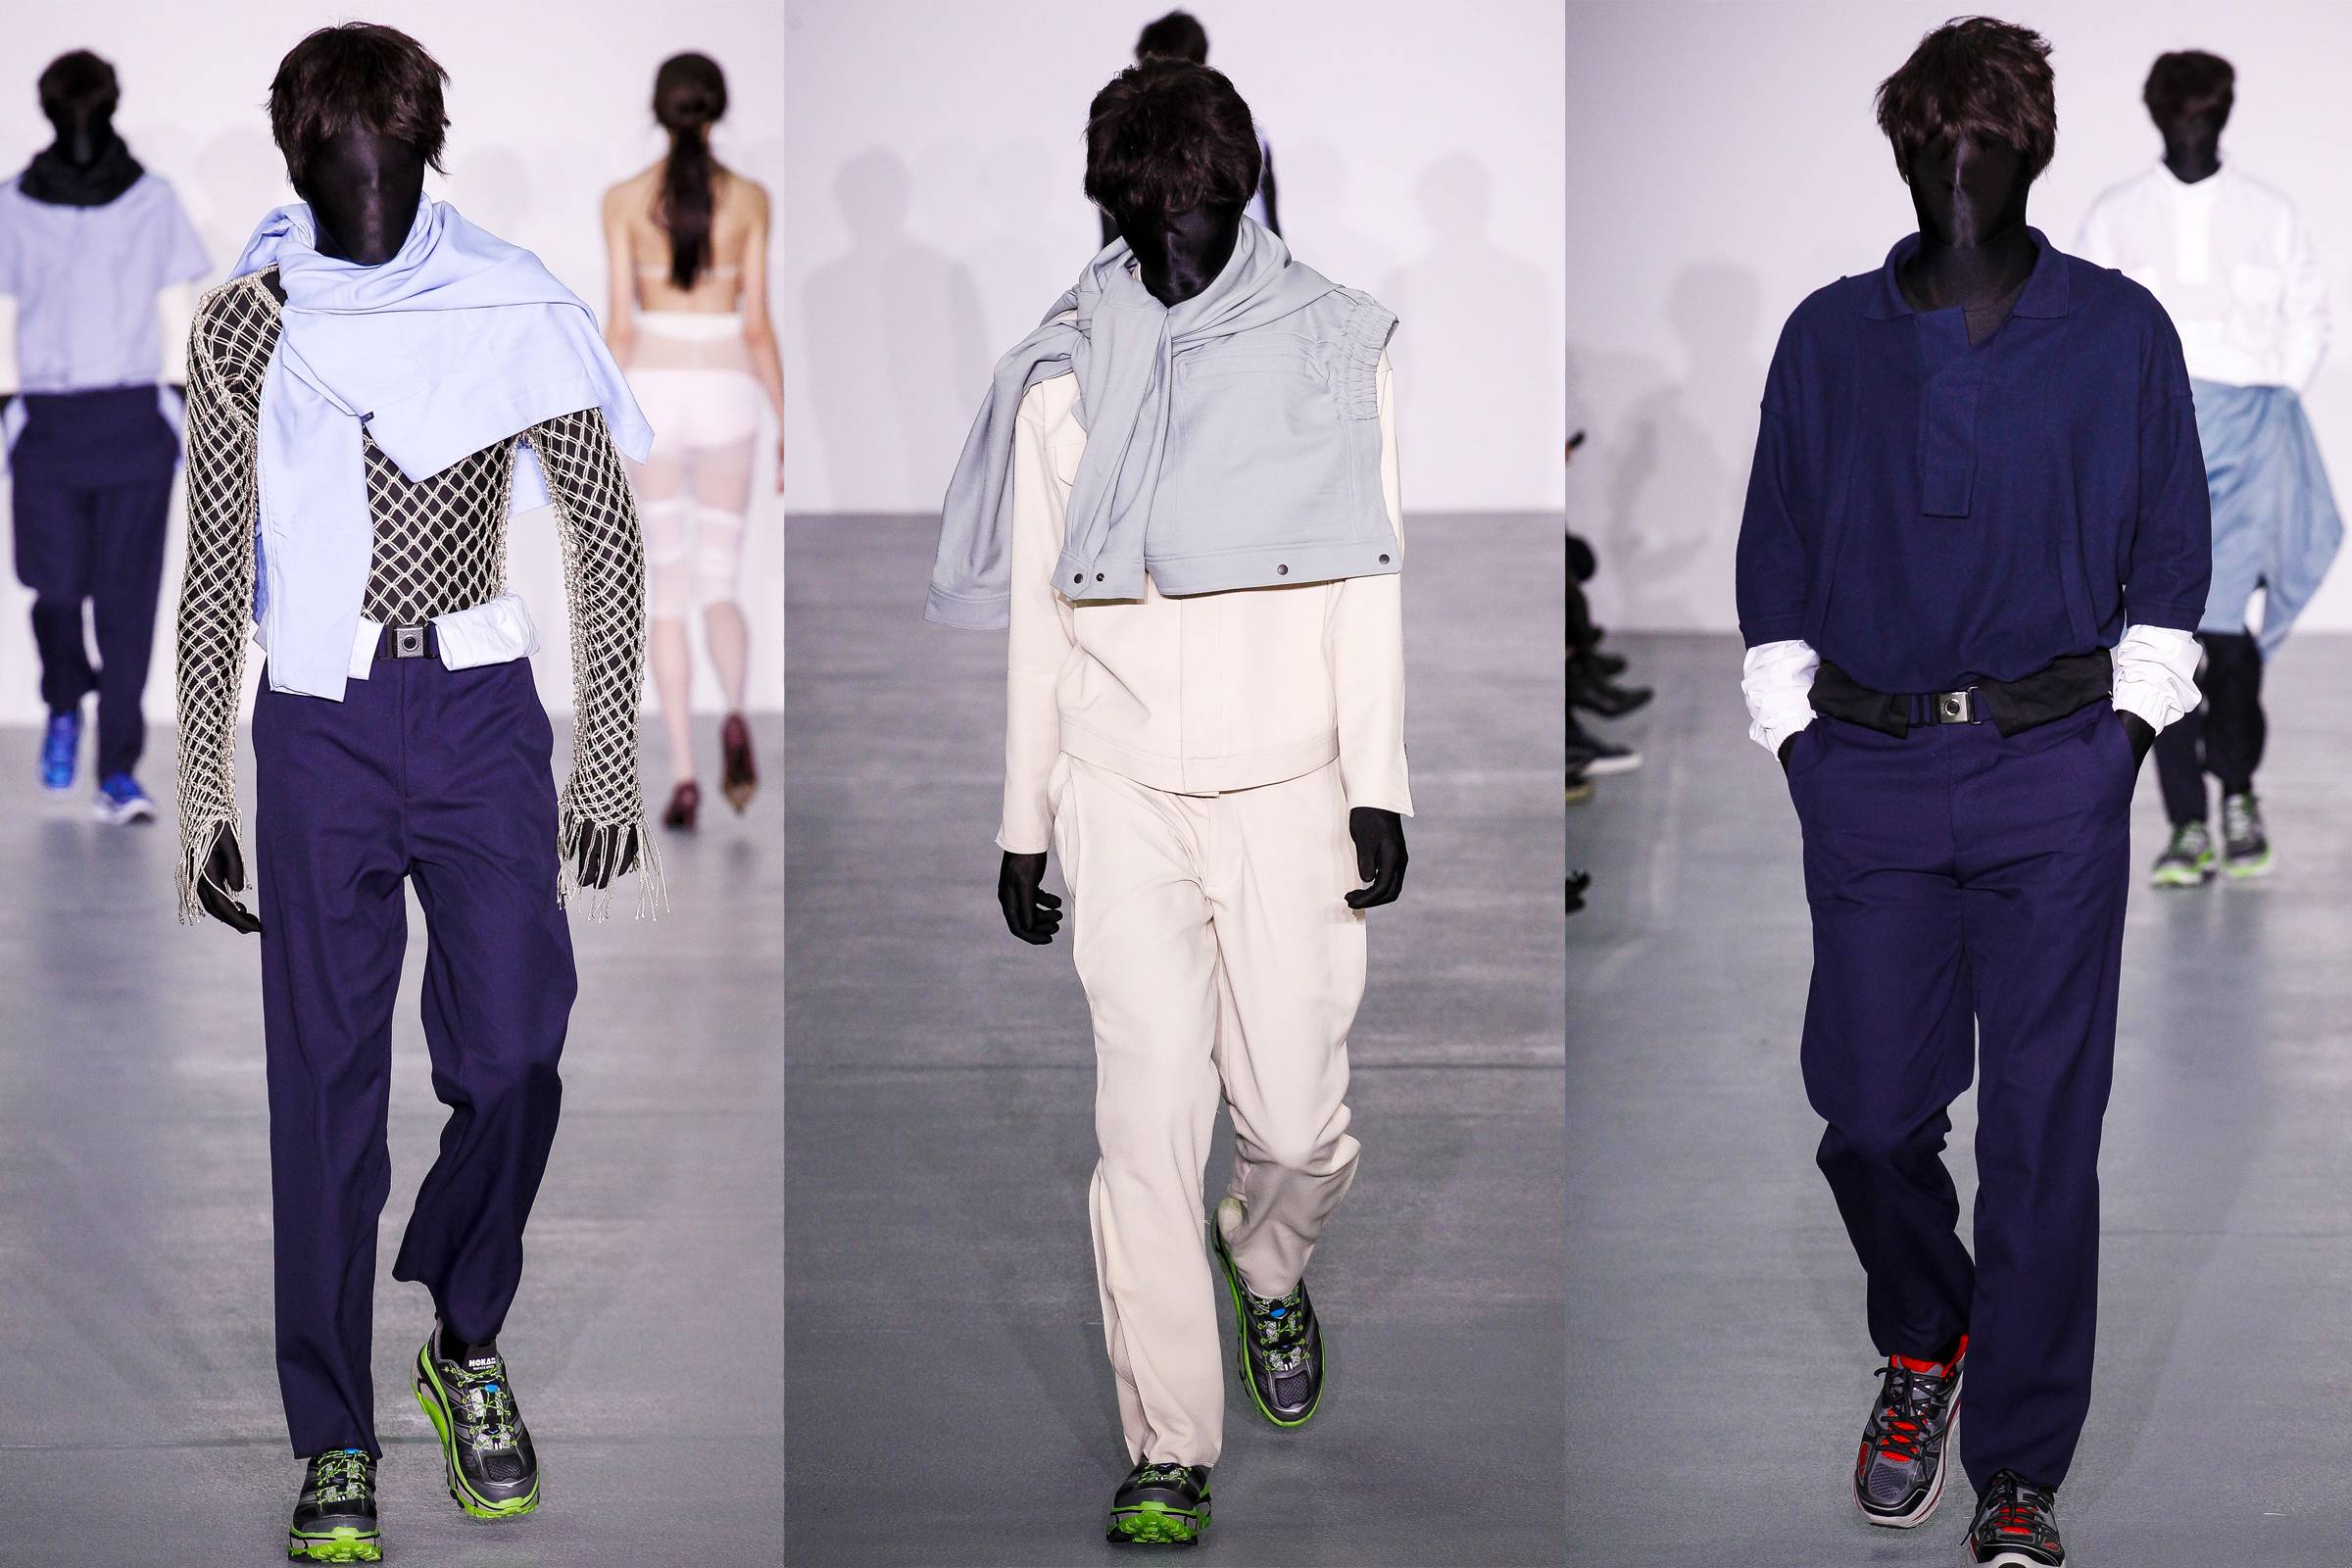 Kiko Kostadinov Fall/Winter 2016 Menswear (presented as part of CSM MA Graduate collections)